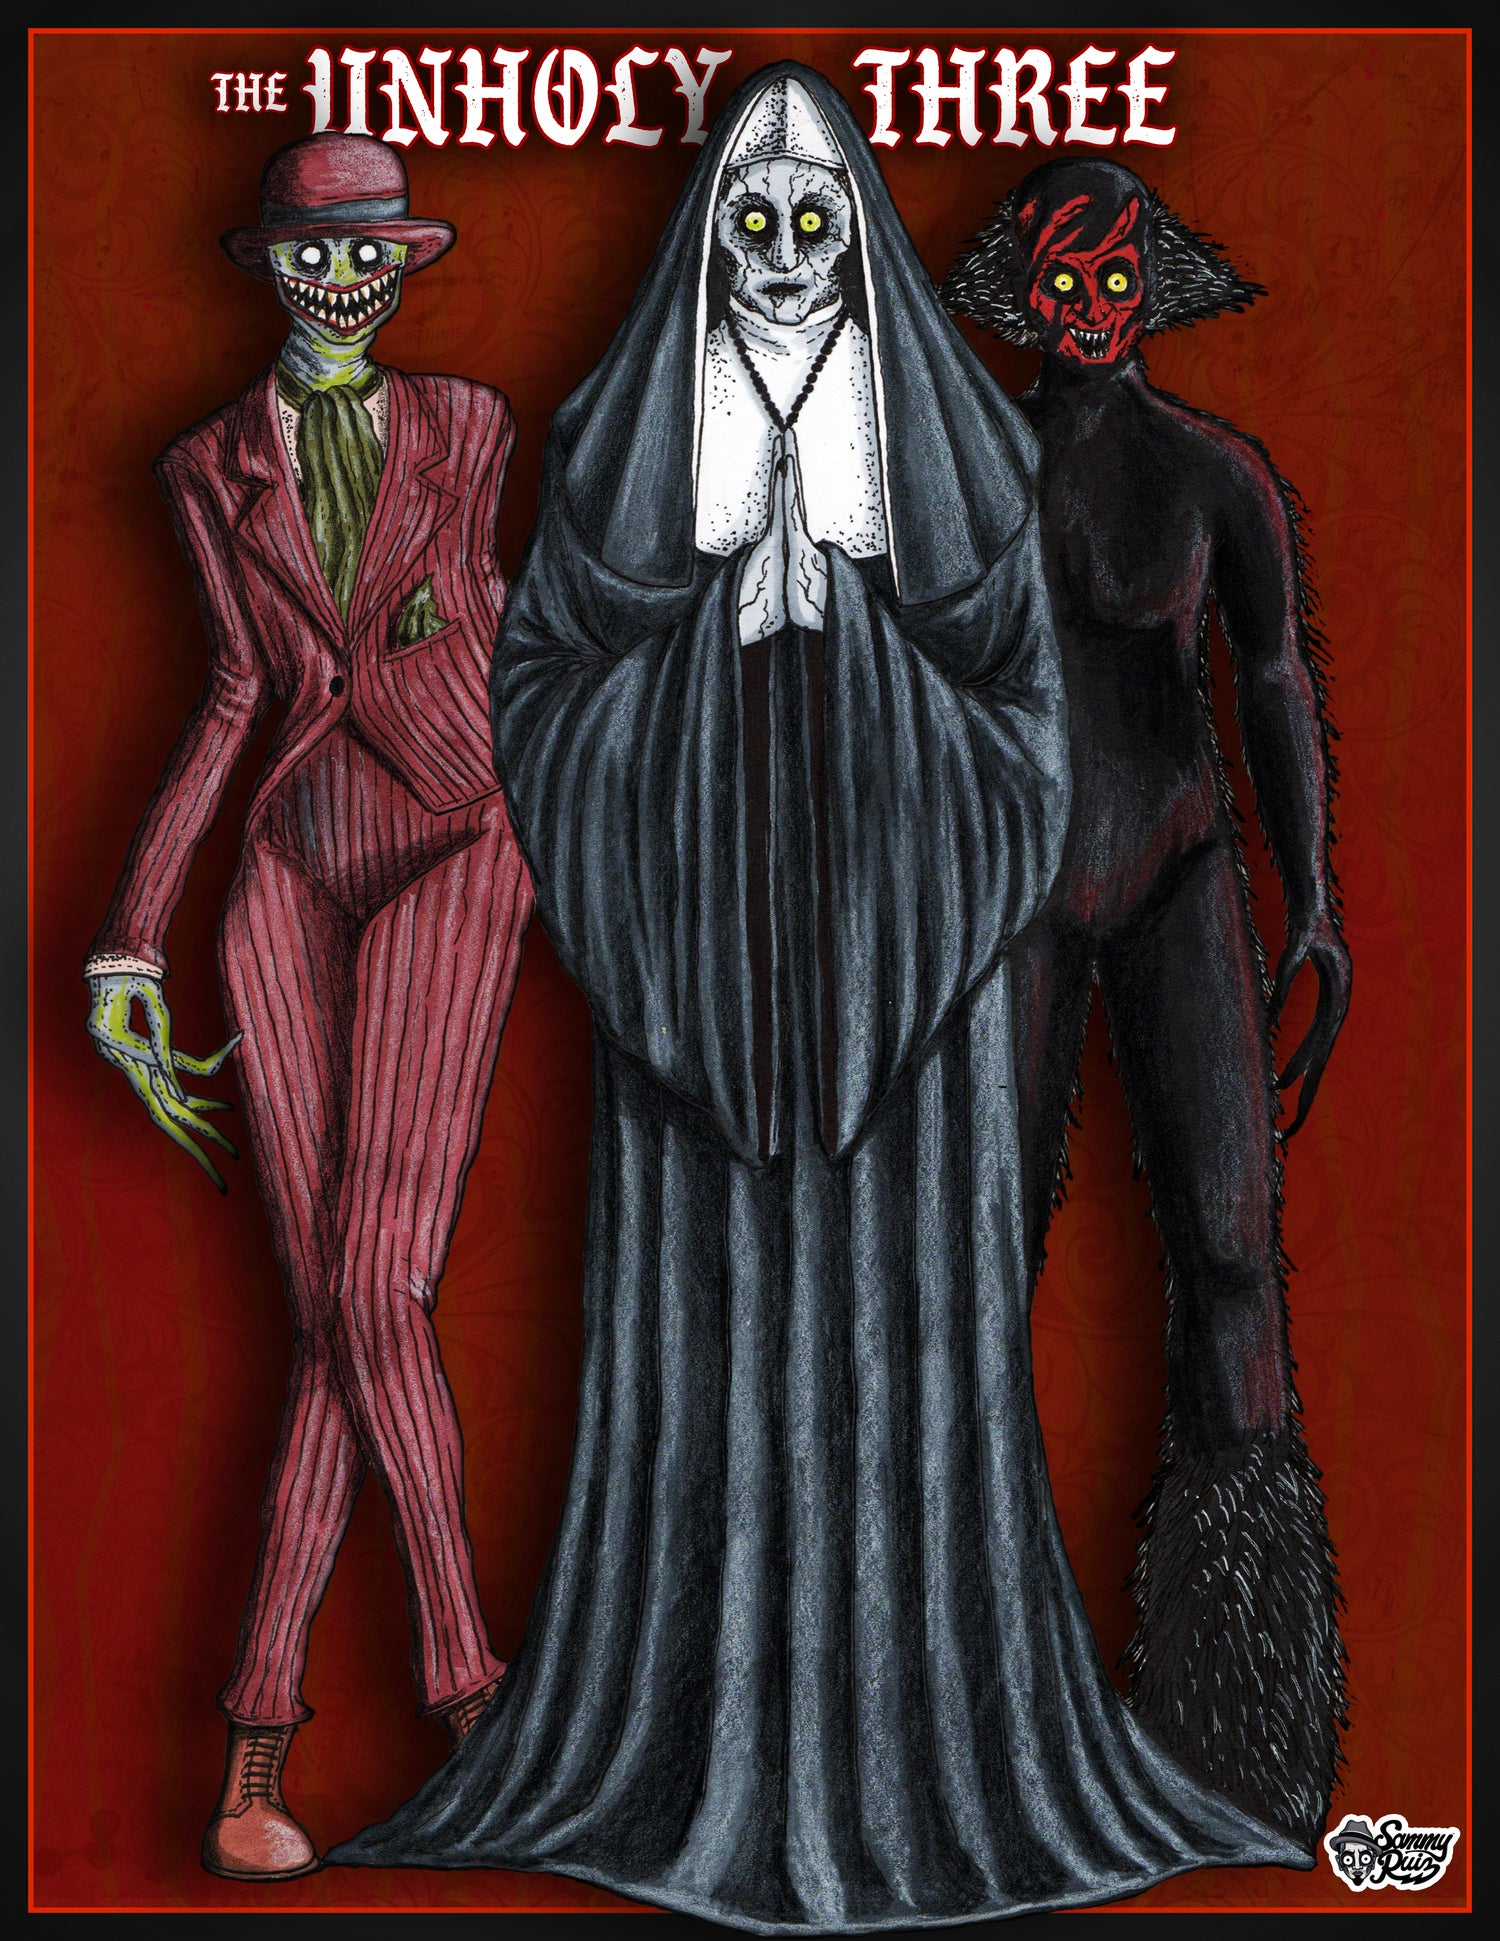 Image of The Unholy Three